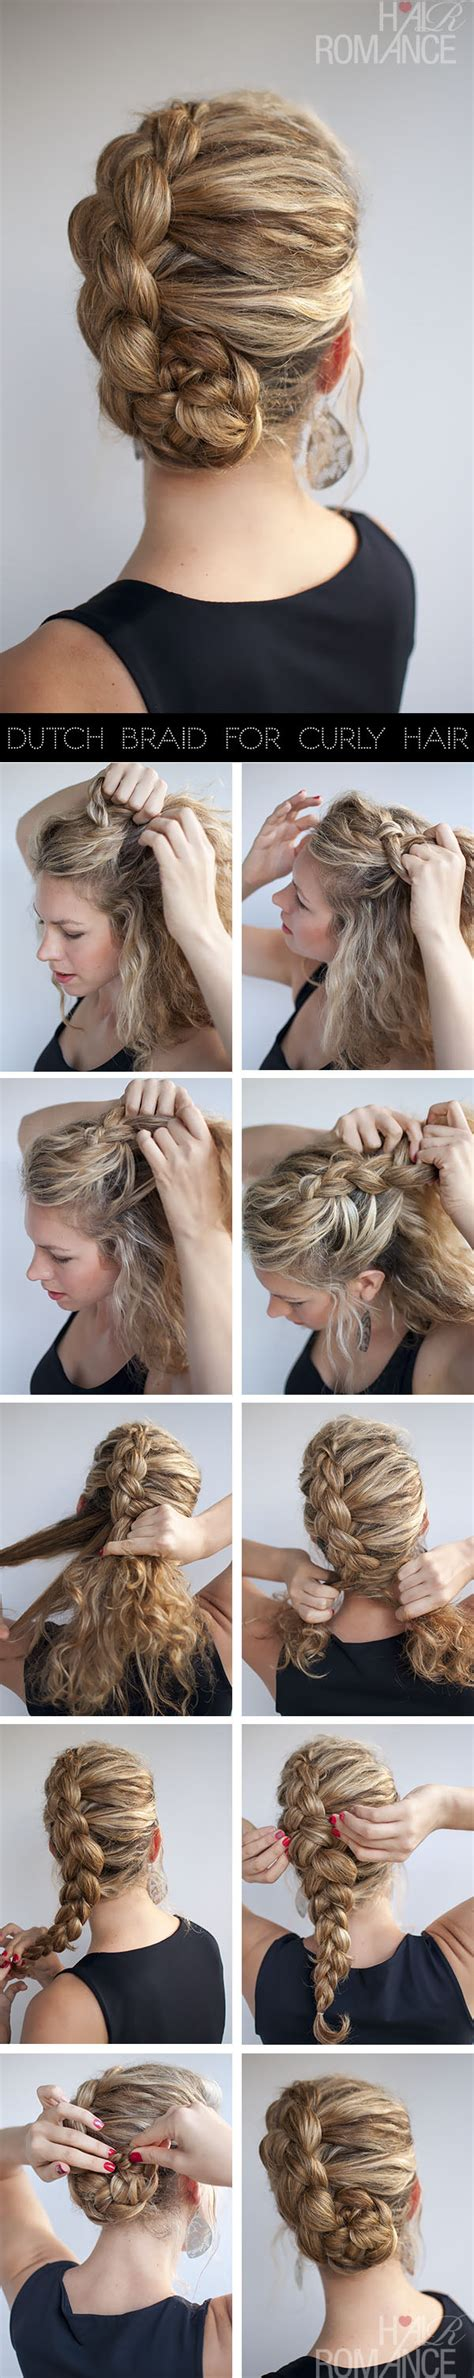 hairstyles for curly hair step by step 20 beautiful hairstyles for long hair step by step